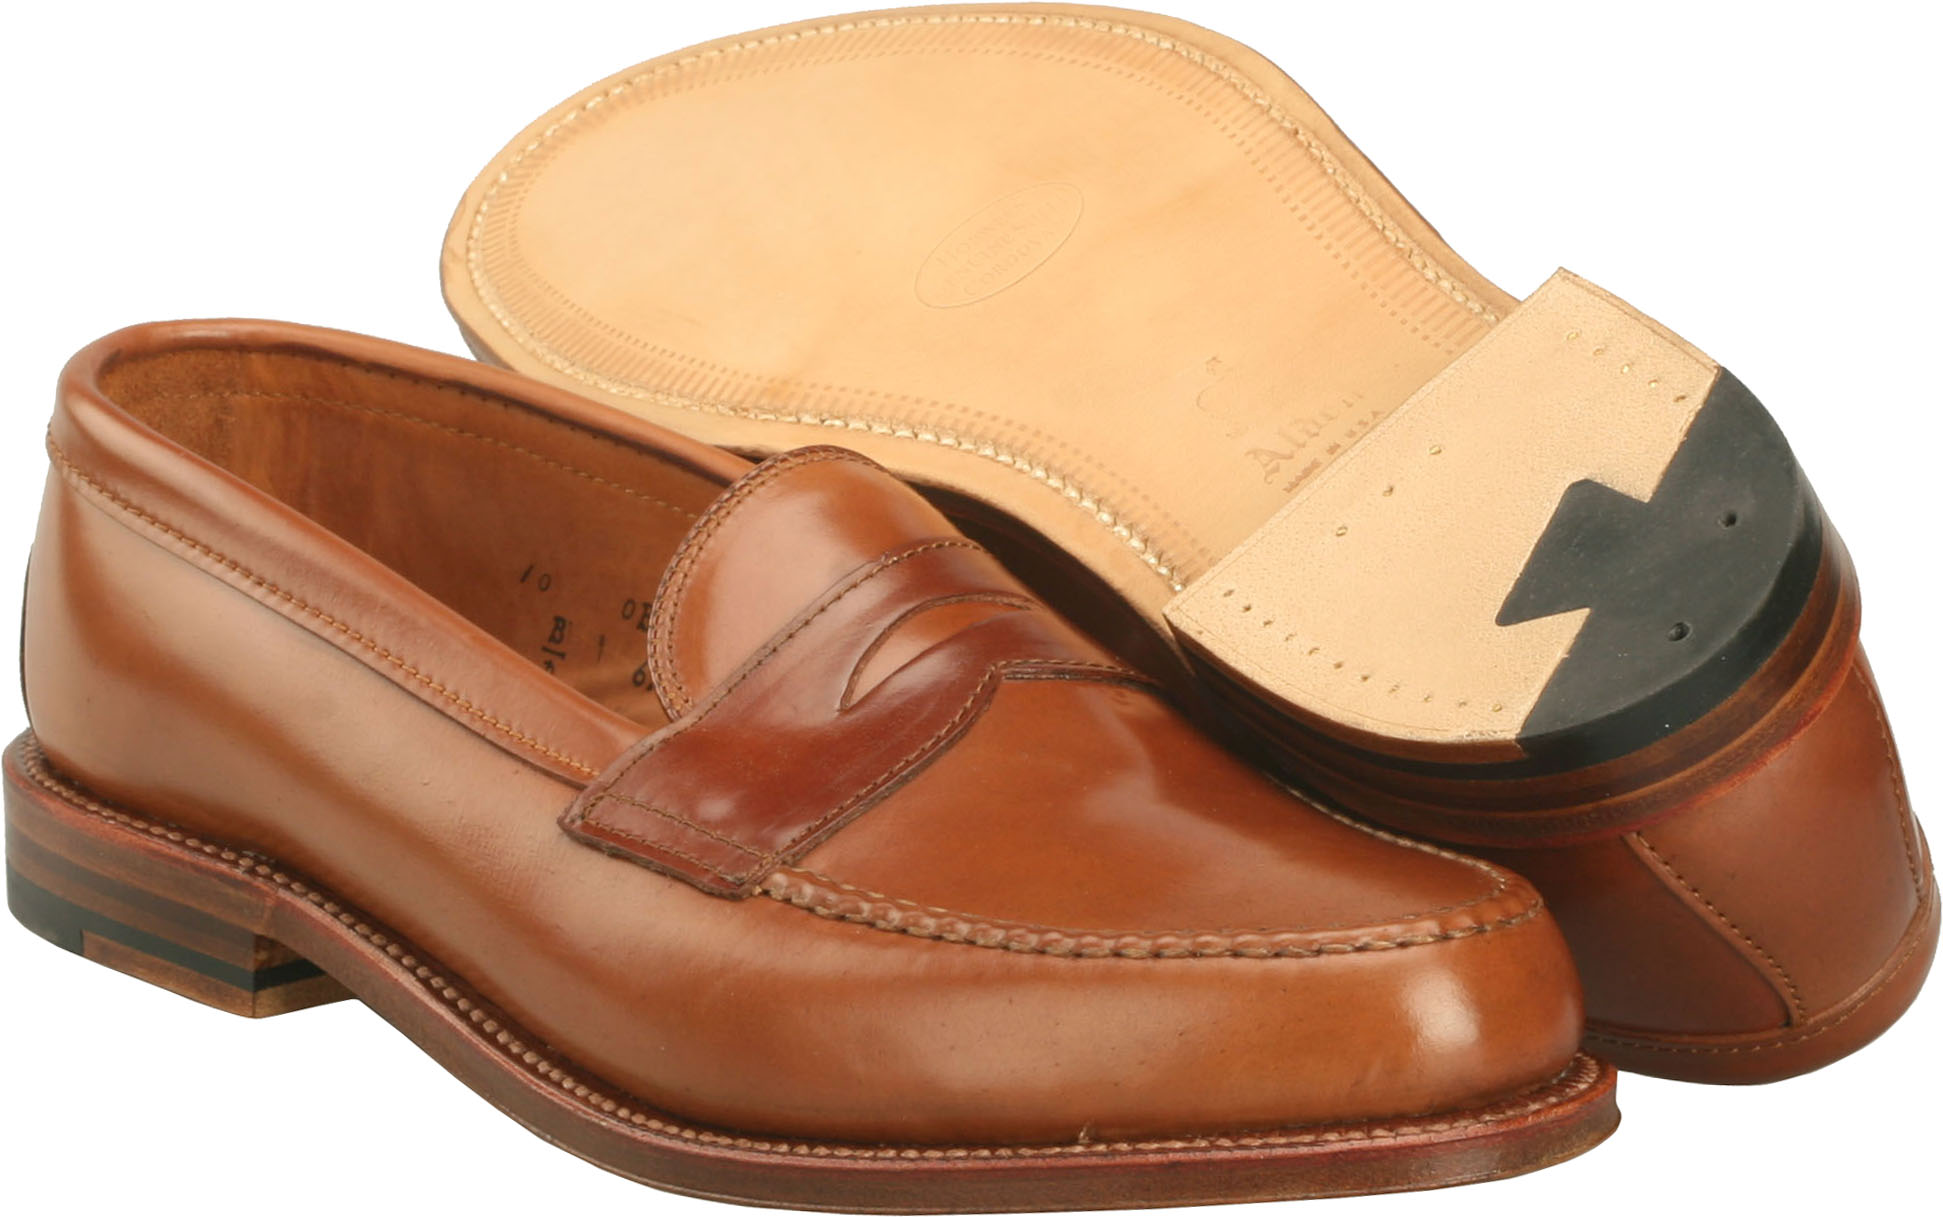 Alden Whiskey Shell Cordovan Shoes - Bootmaker Edition Leisure Handsewn